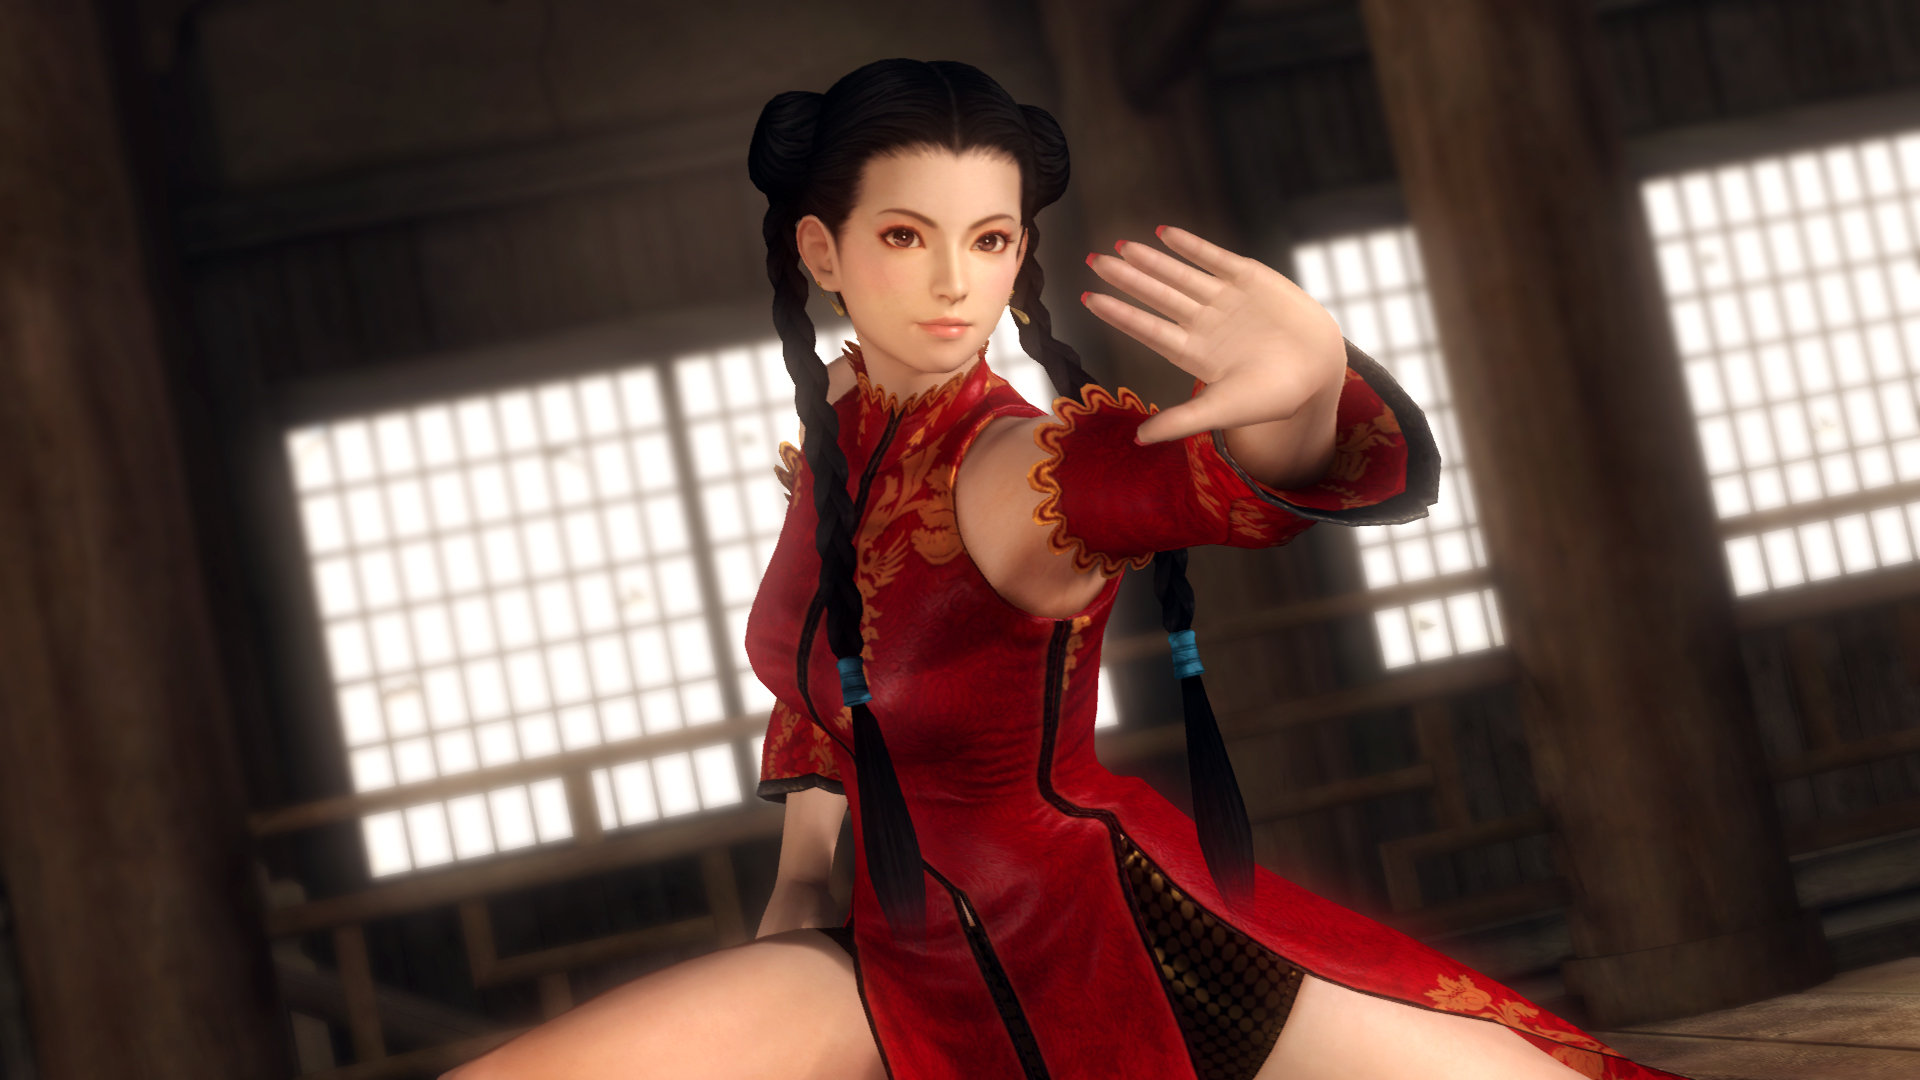 Sggaminginfo 187 Free Costume Pack Dlc Now Available For Dead Or Alive 5